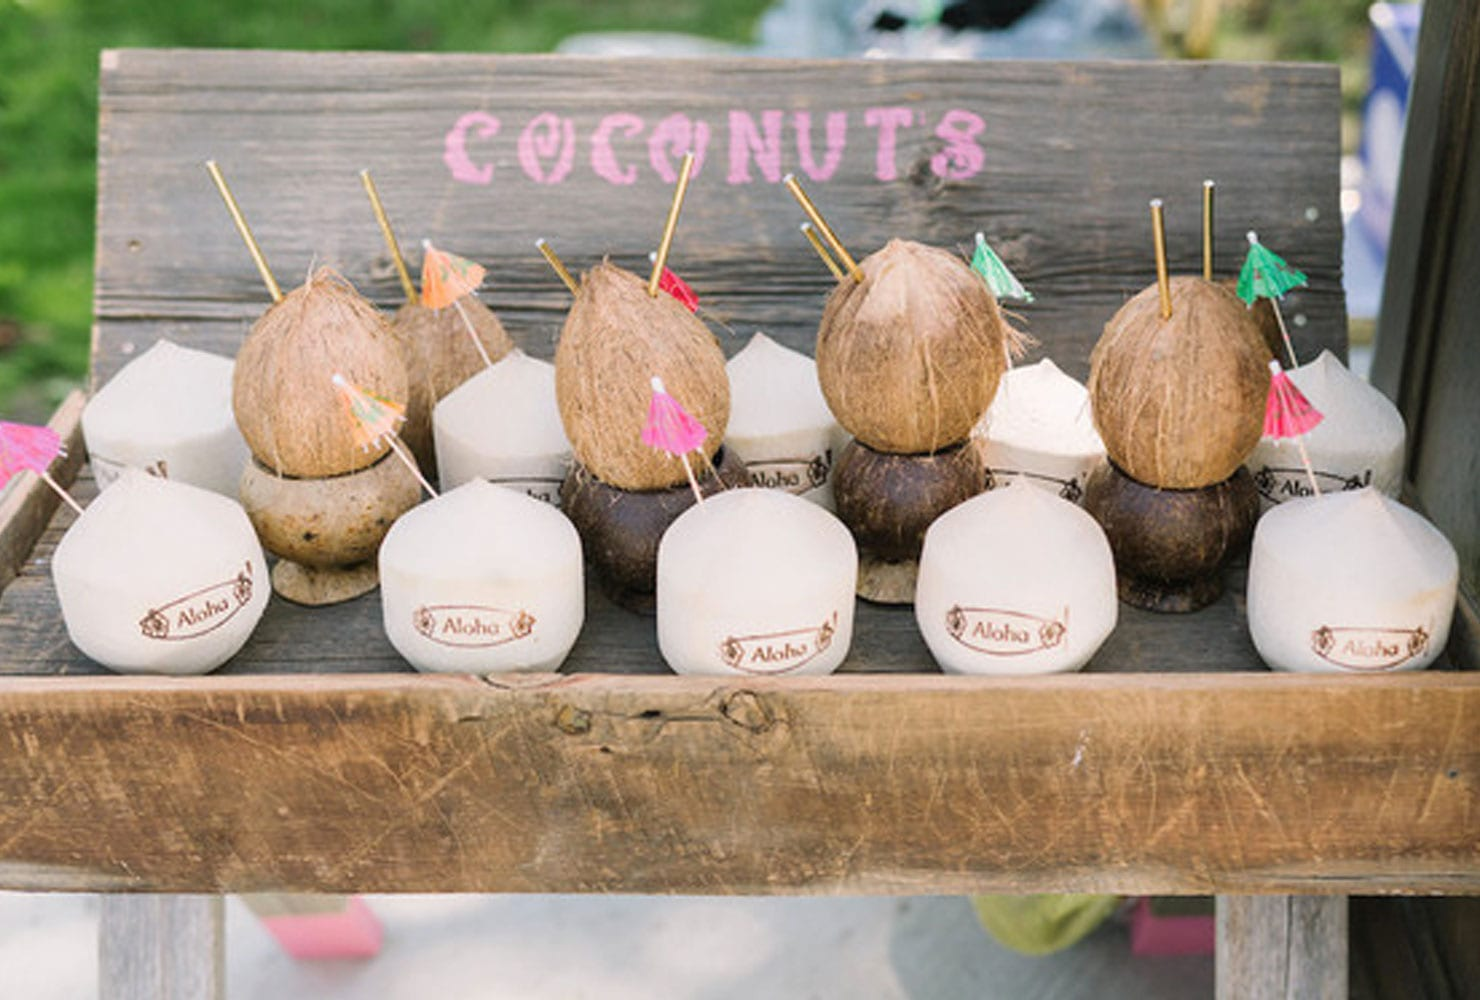 Coconut drinks on a wooden table